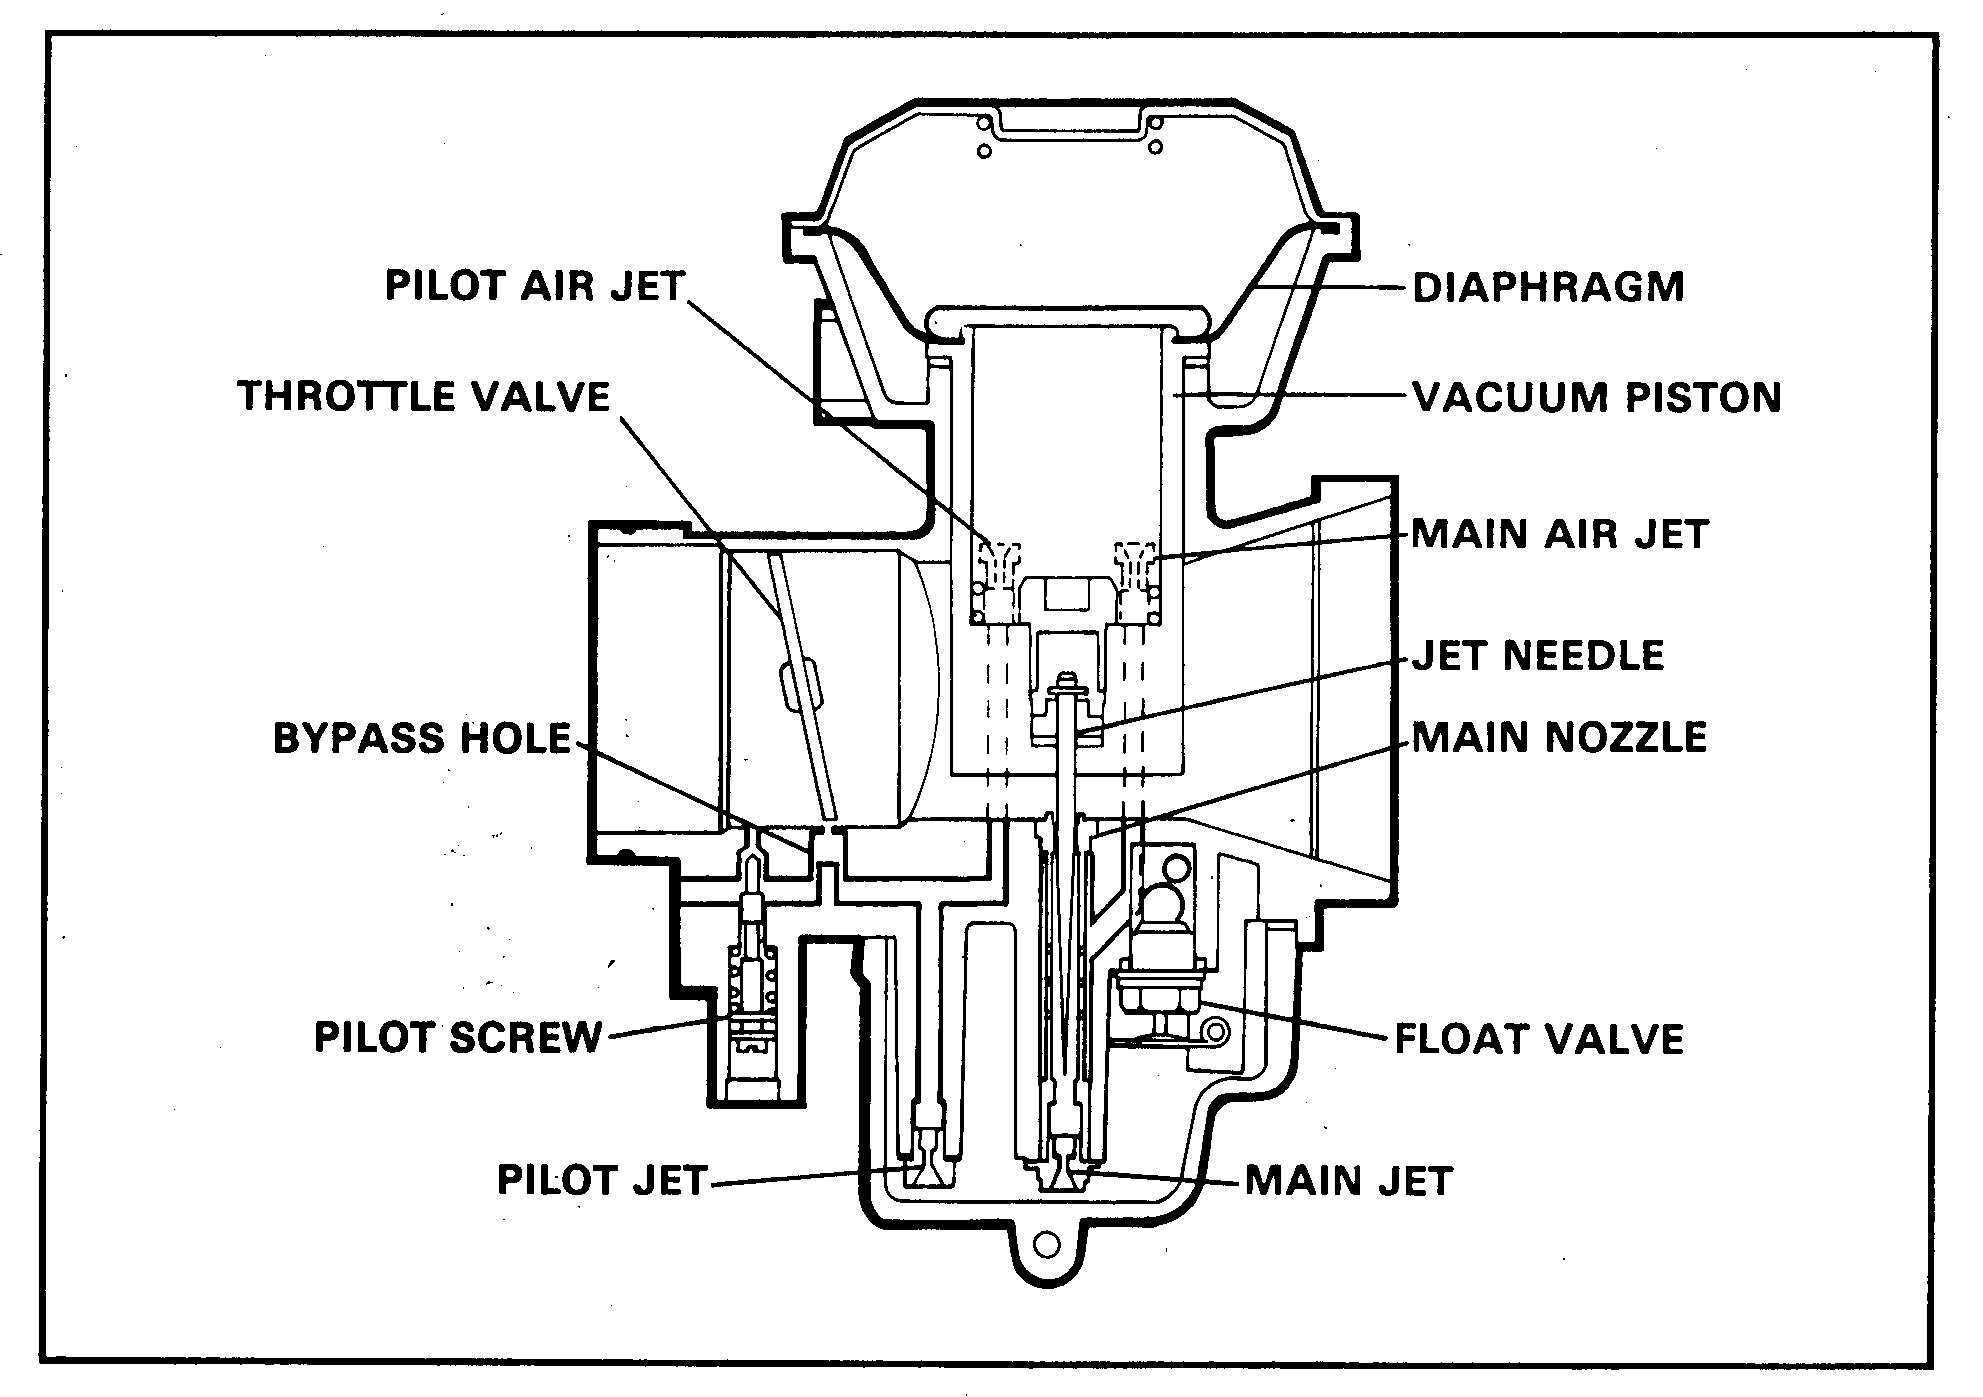 Virago Hitachi Carburetors Yamaha 1100 Wiring Diagram